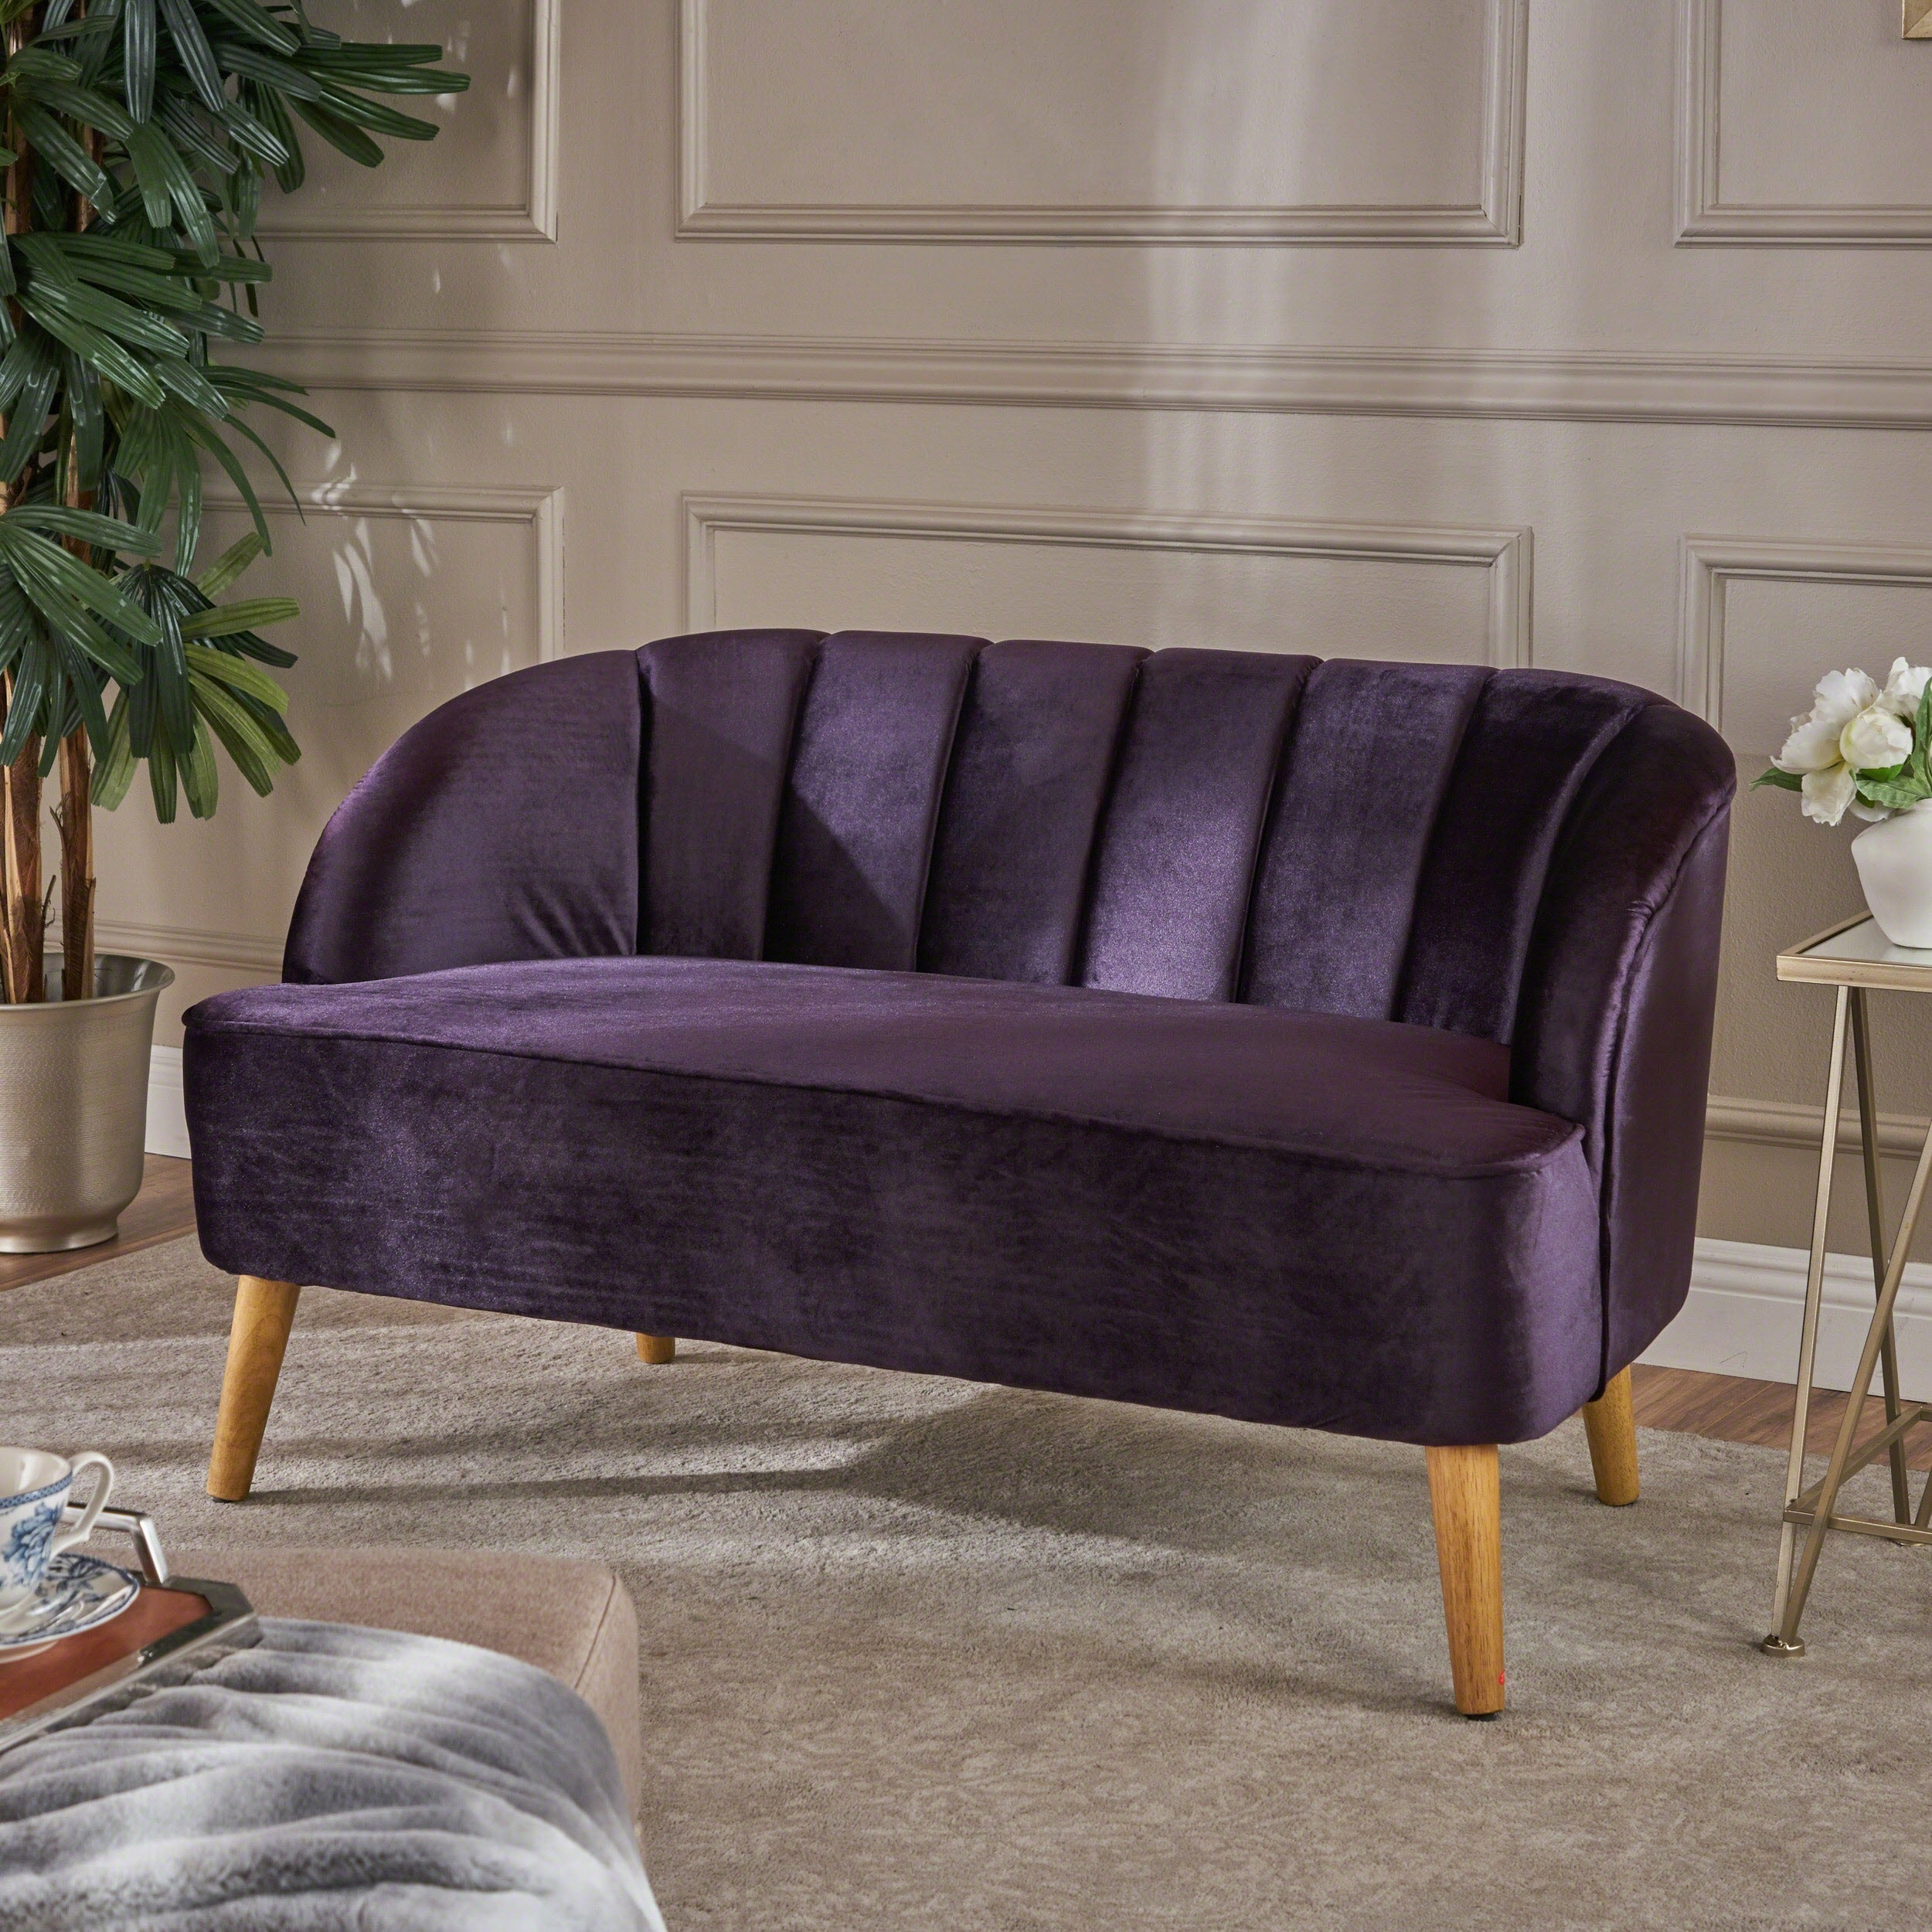 Amaia Modern Velvet Loveseat Sofa By Christopher Knight Home   Free  Shipping Today   Overstock   25486819